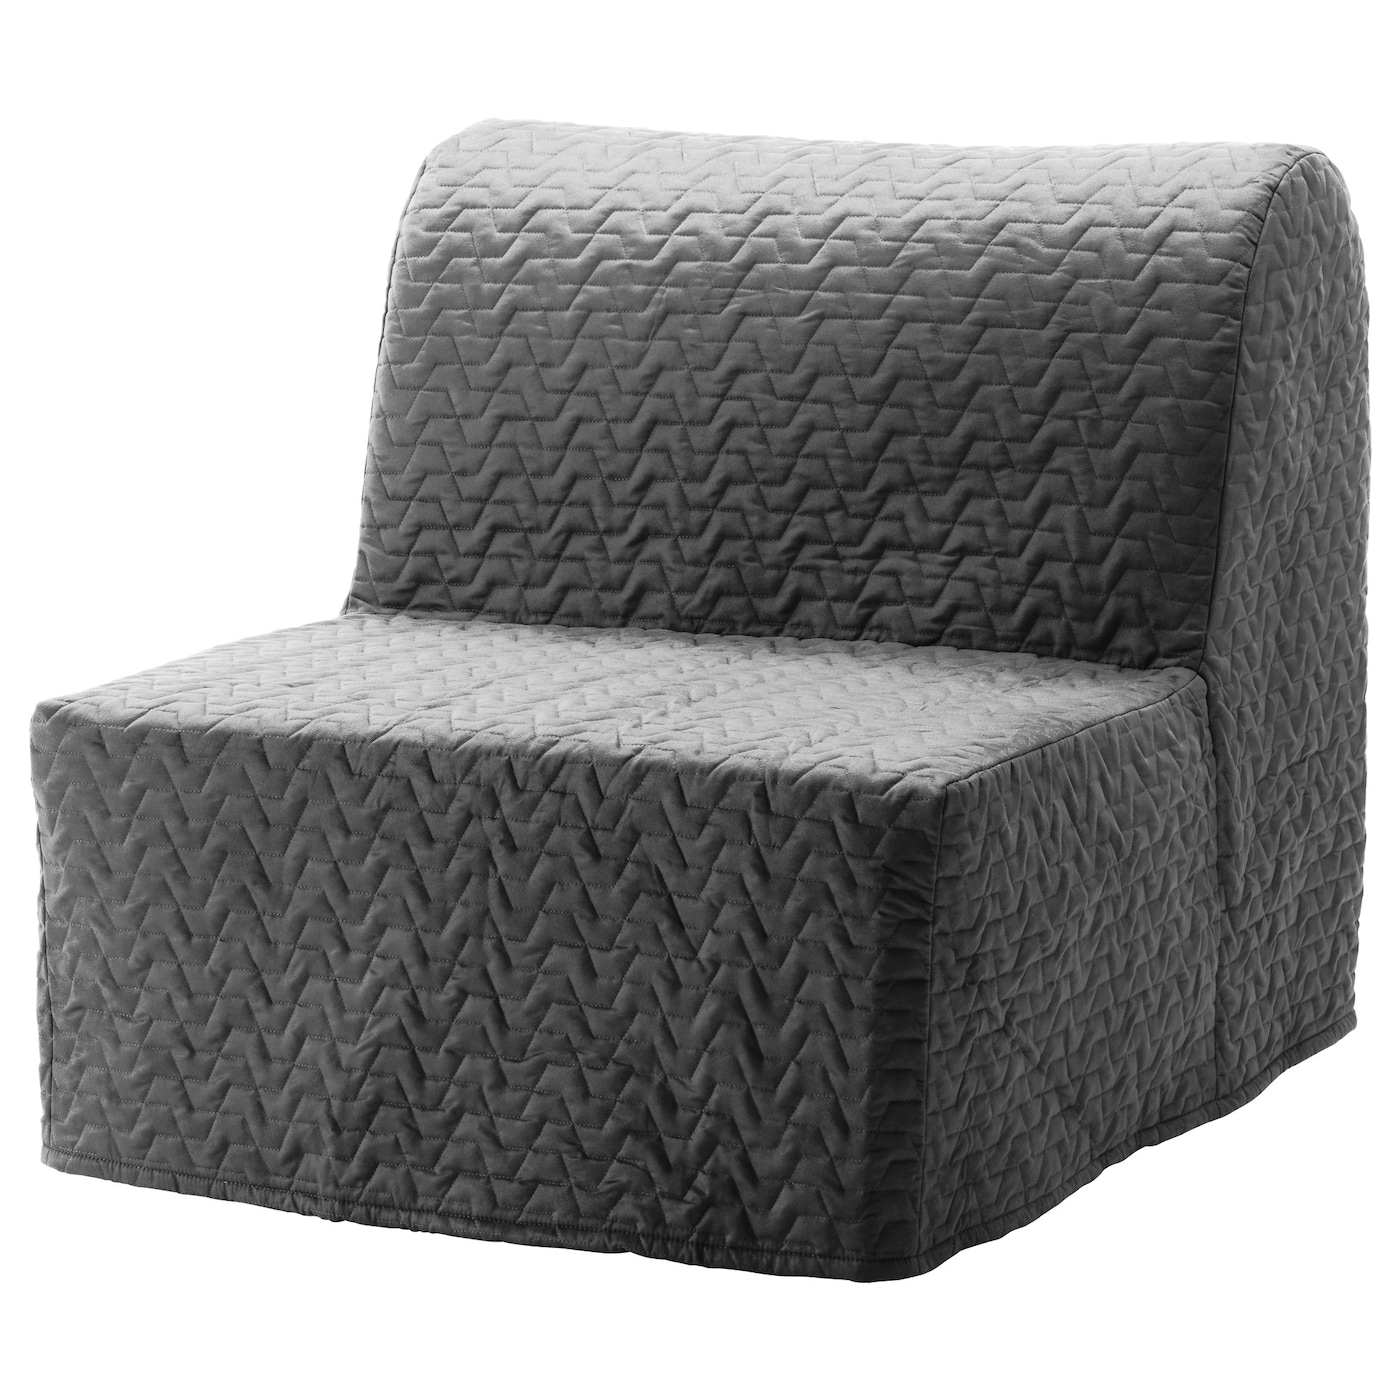 lycksele chair bed cover vallarum grey ikea. Black Bedroom Furniture Sets. Home Design Ideas